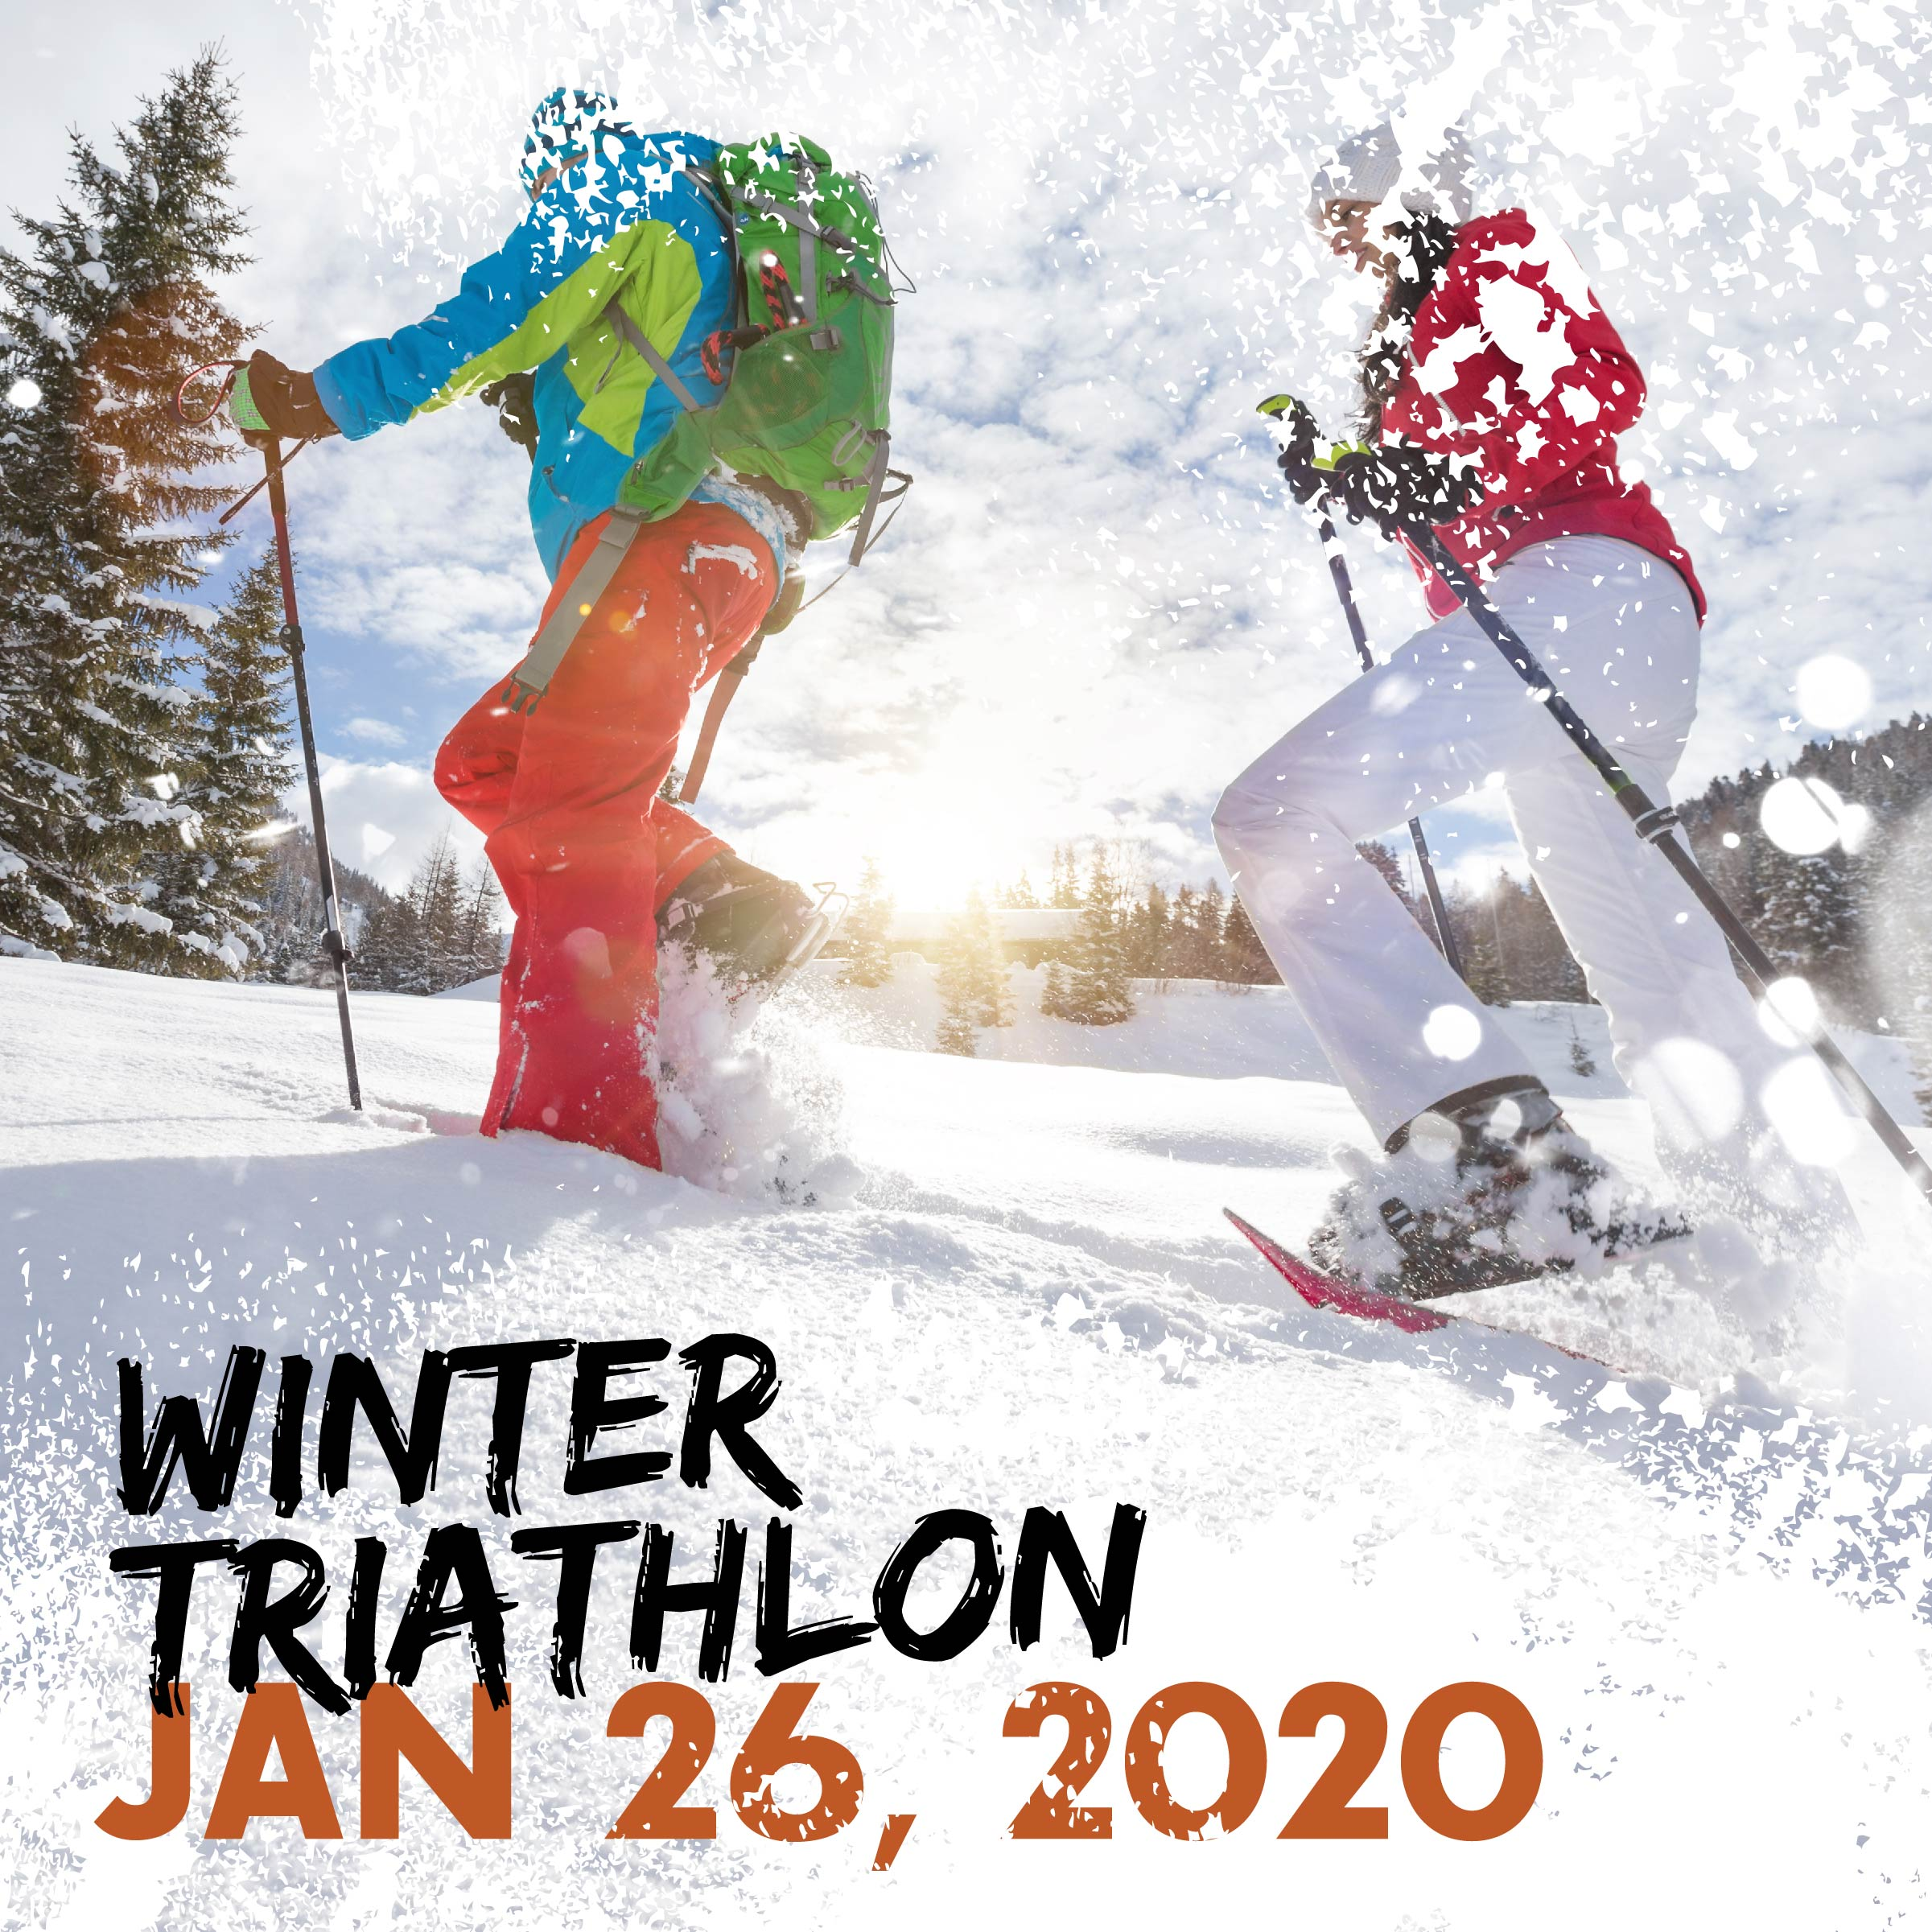 Winter Triathlon: January 25, 2020